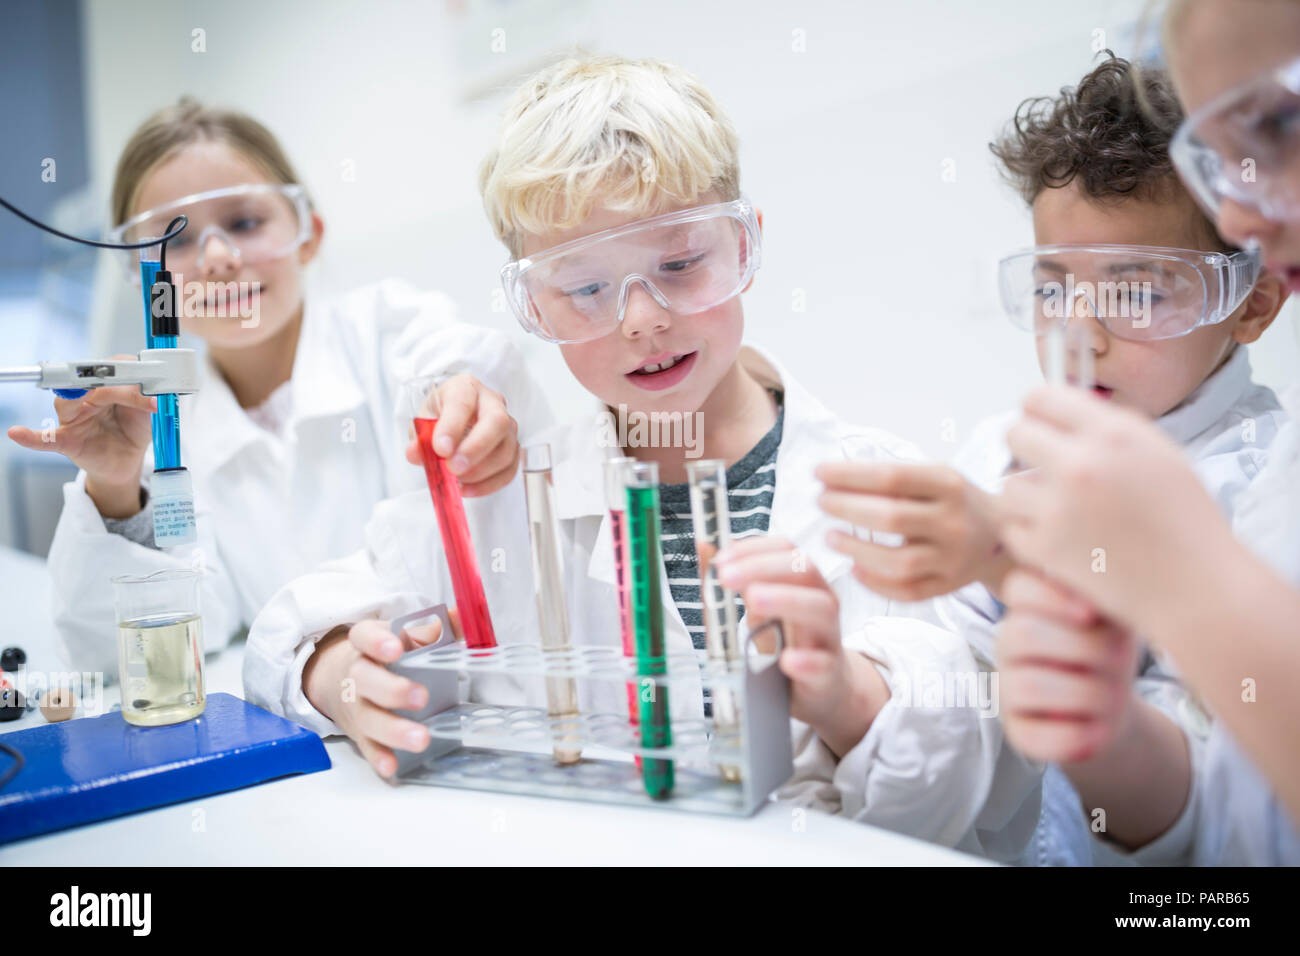 Pupils in science class experimenting with liquids in test tubes - Stock Image